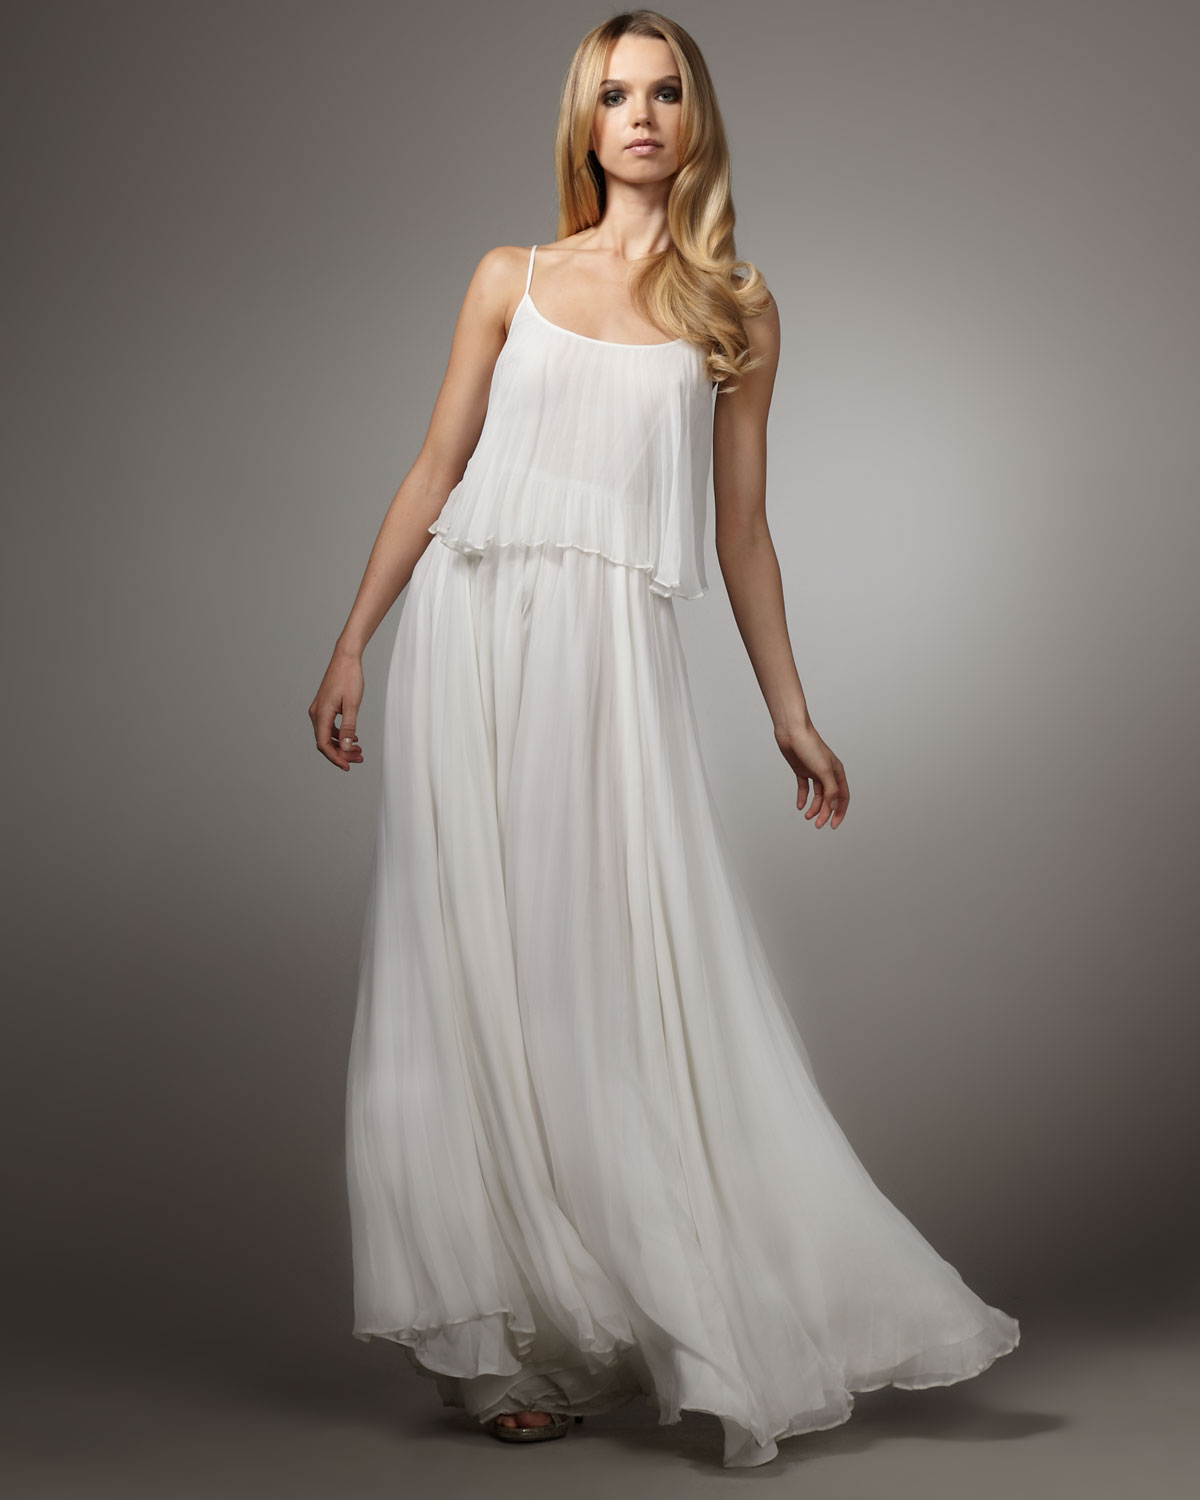 Wedding Gown Chiffon: Halston Heritage Pleated Chiffon Gown In White